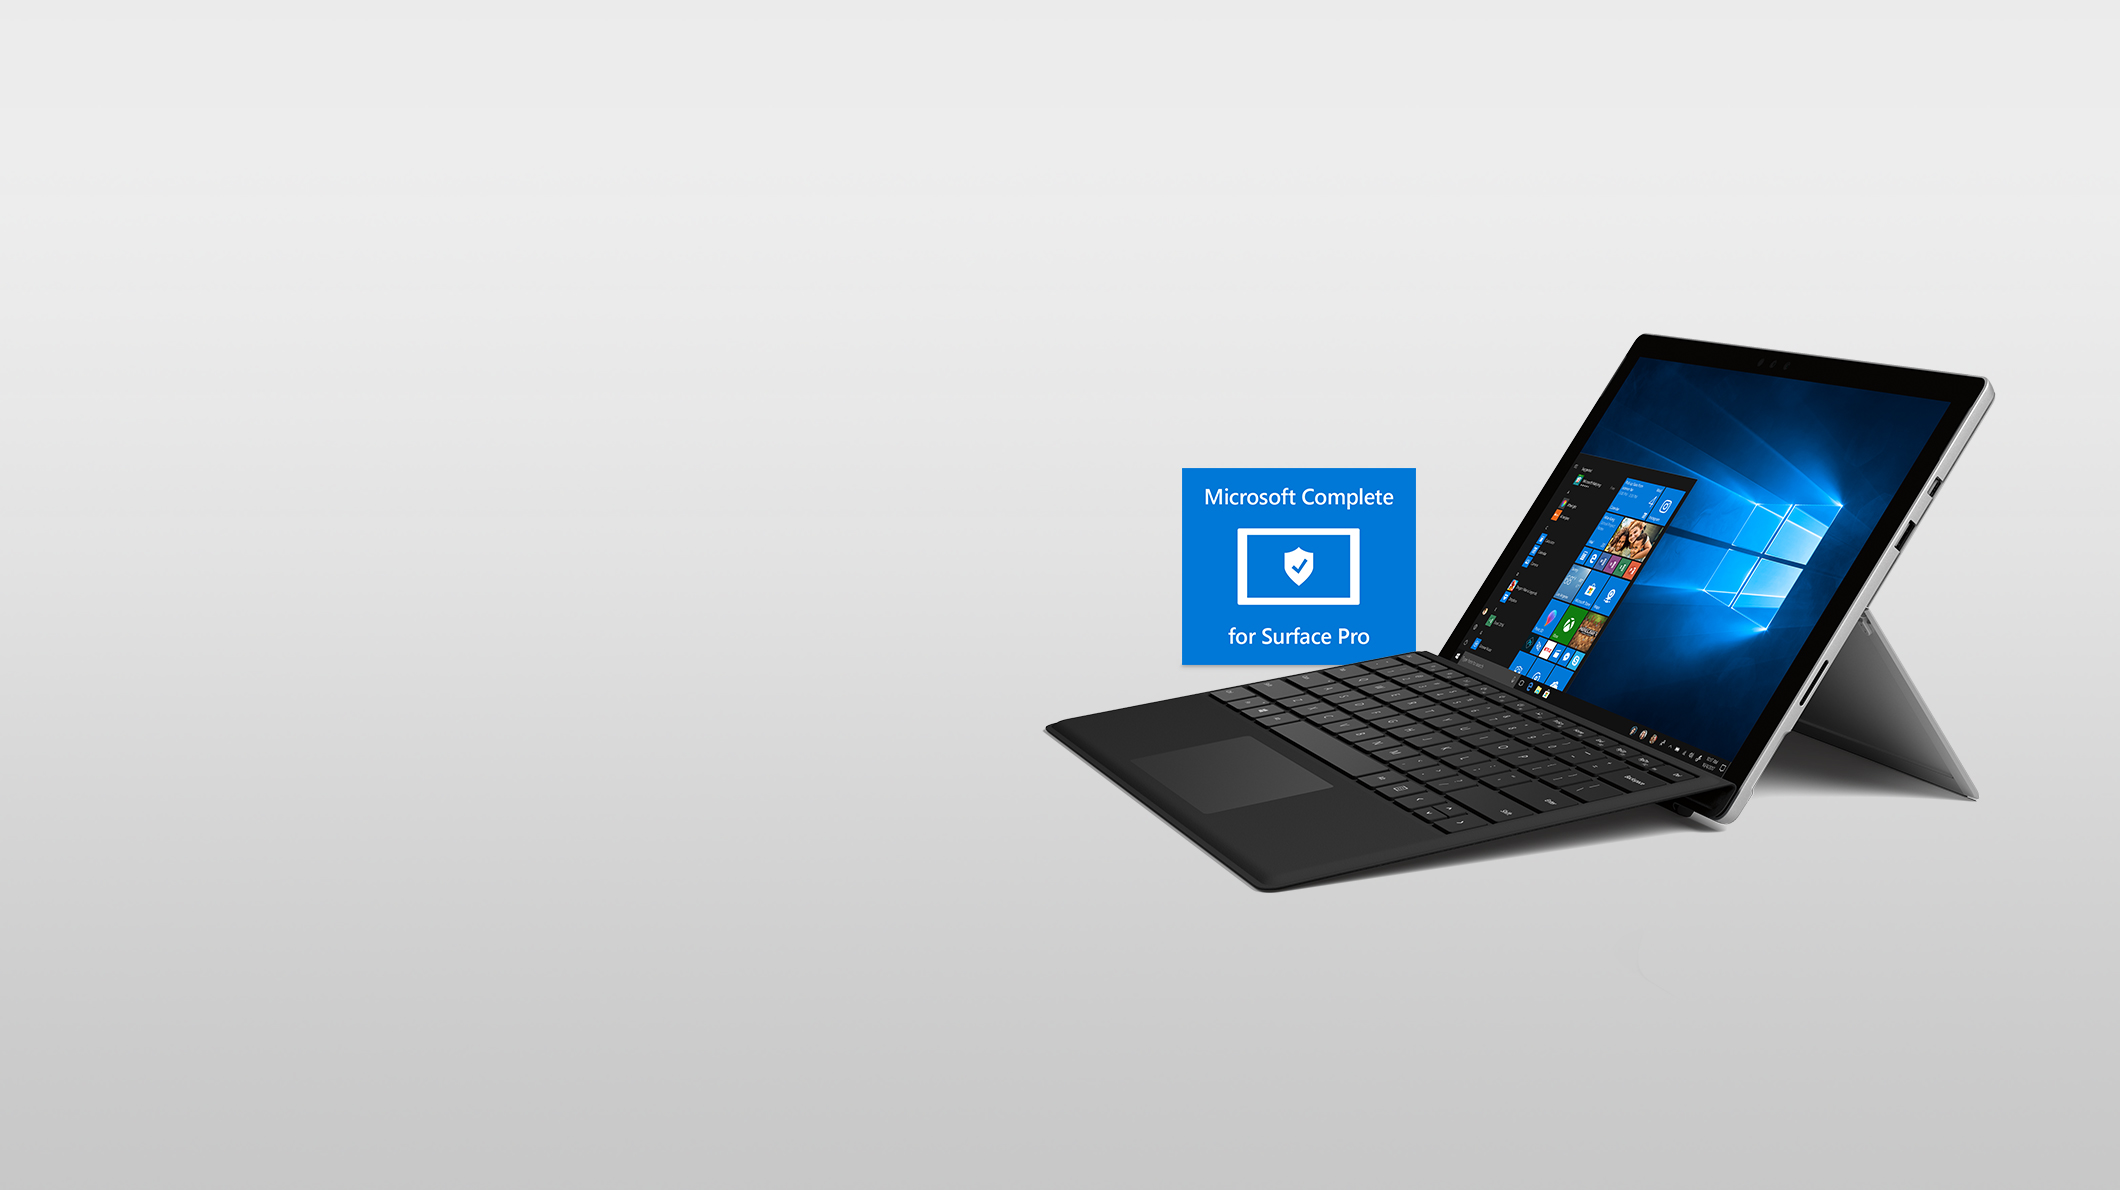 Surface Pro + MS Complete